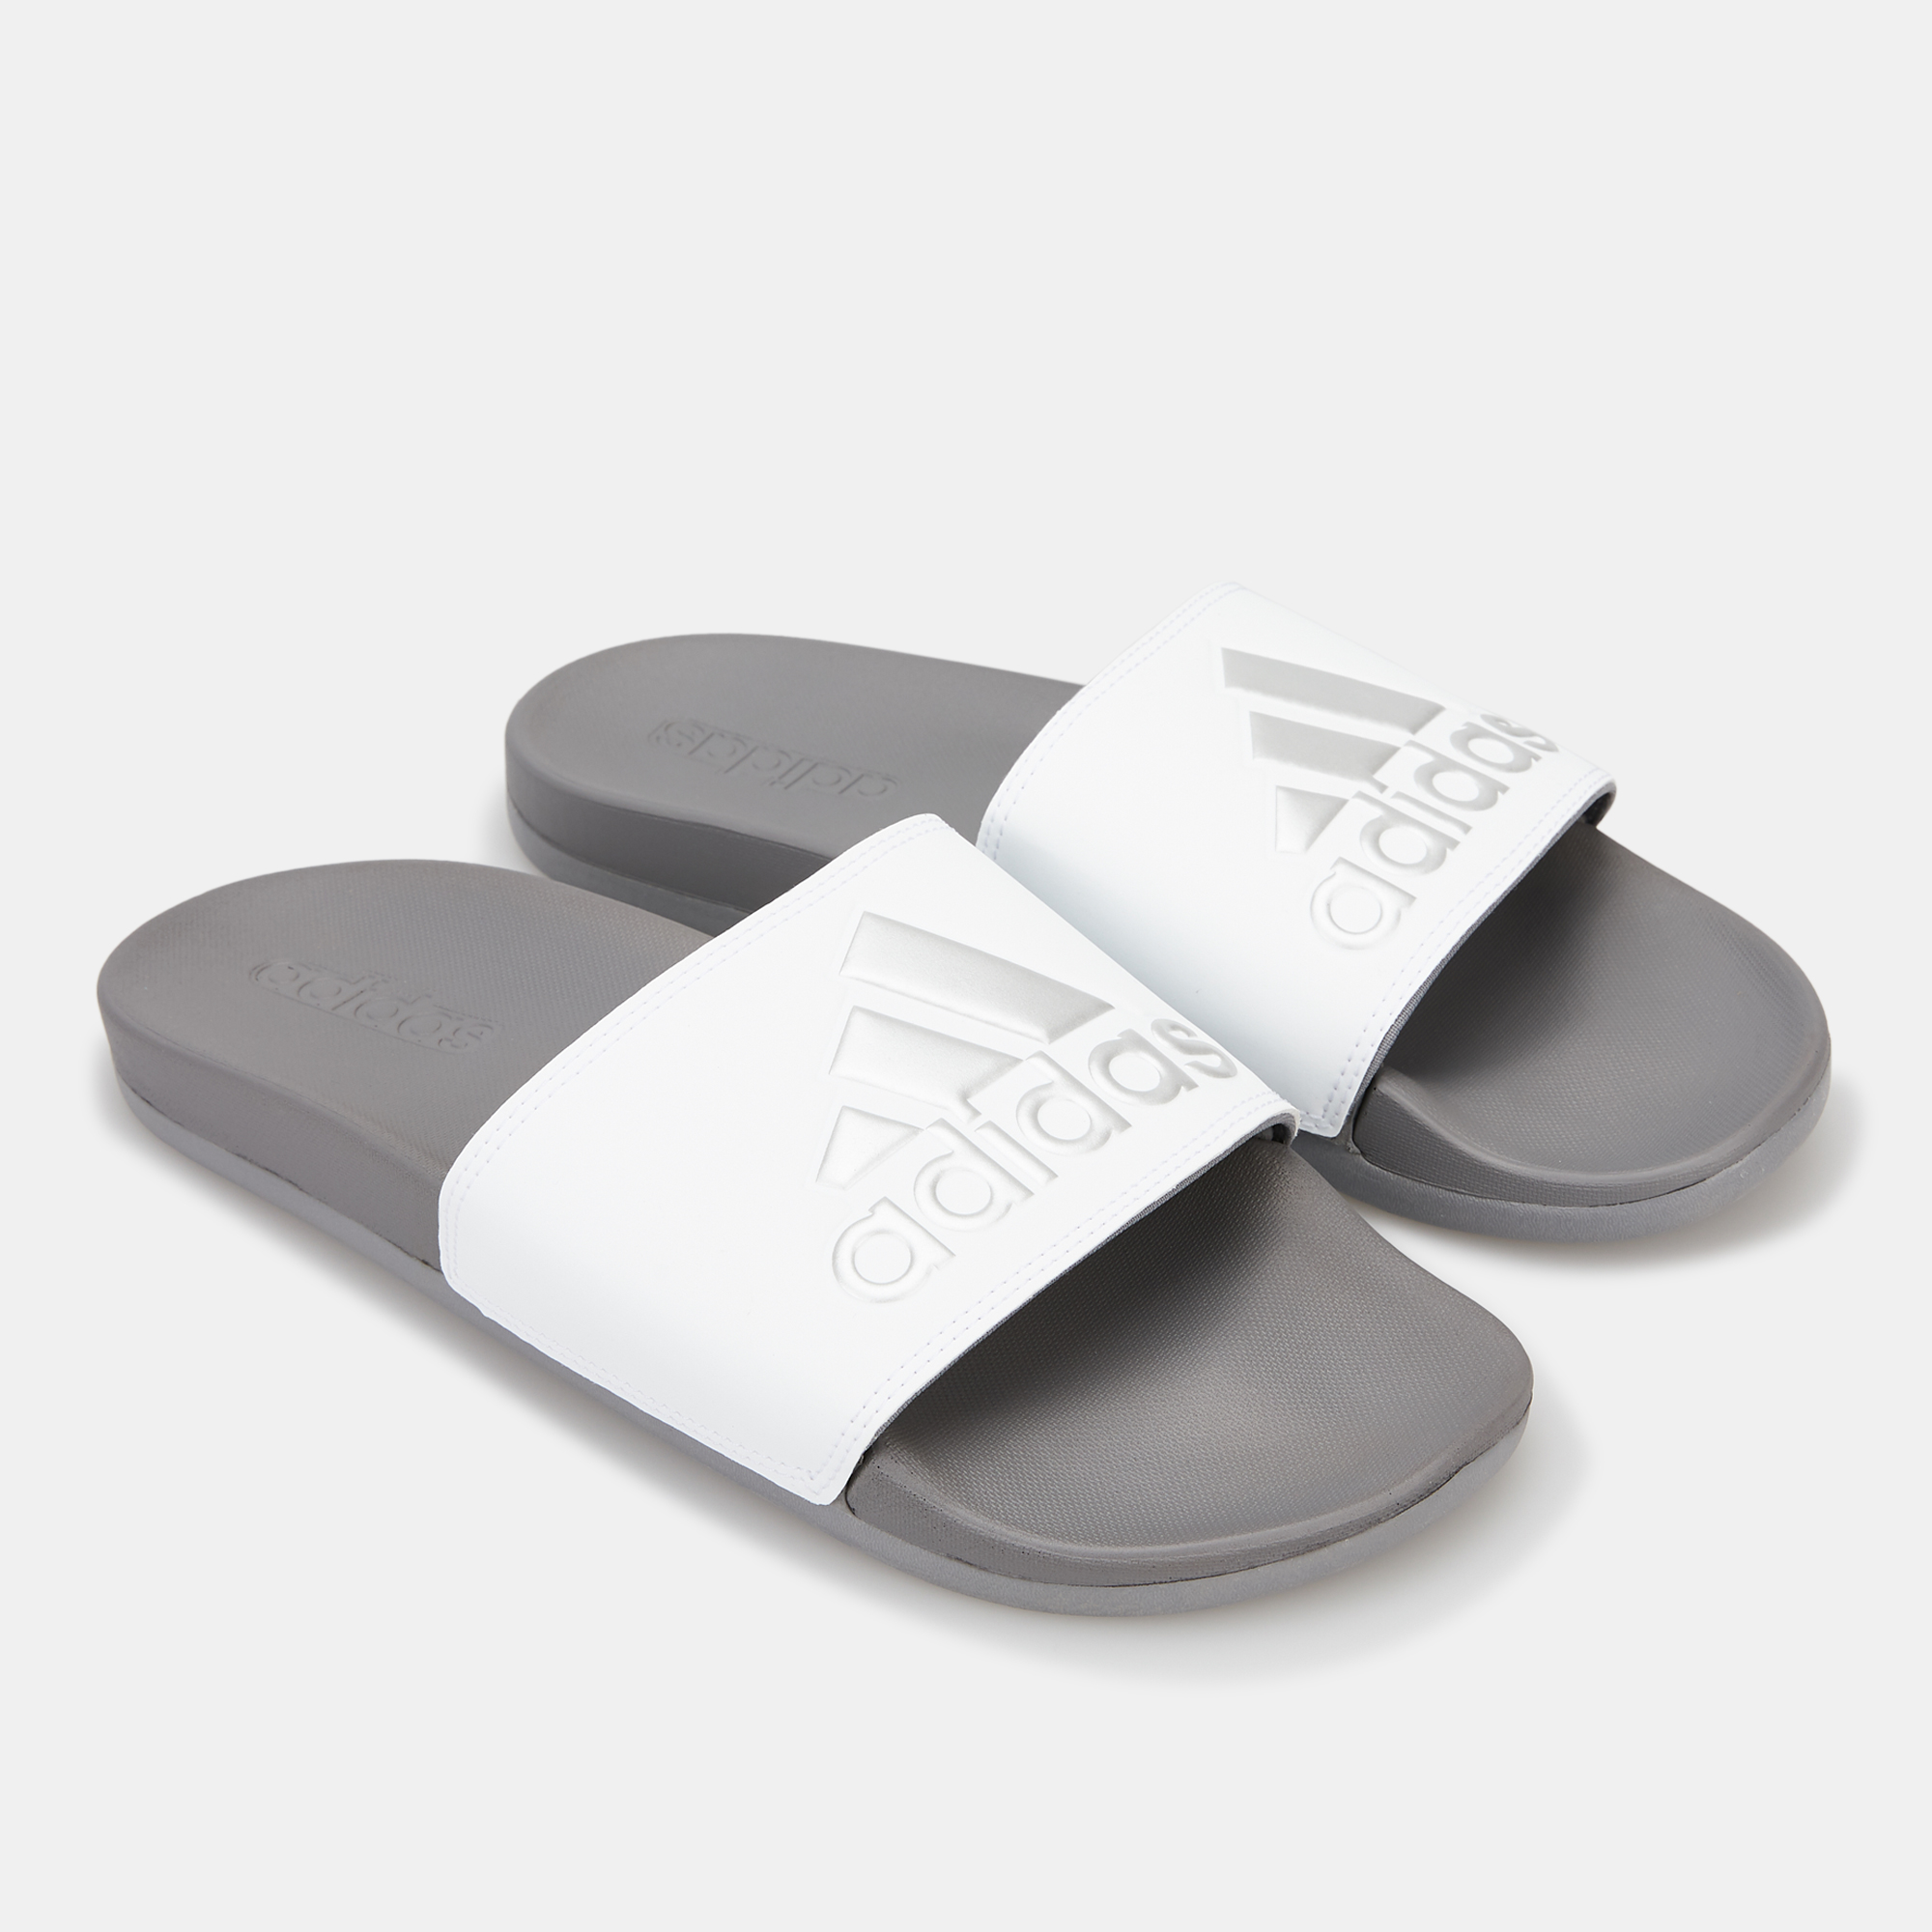 a89ef726a848 Adidas men adilette cloudfoam plus logo slides sandals jpg 2000x2000 Adidas  men flip flops